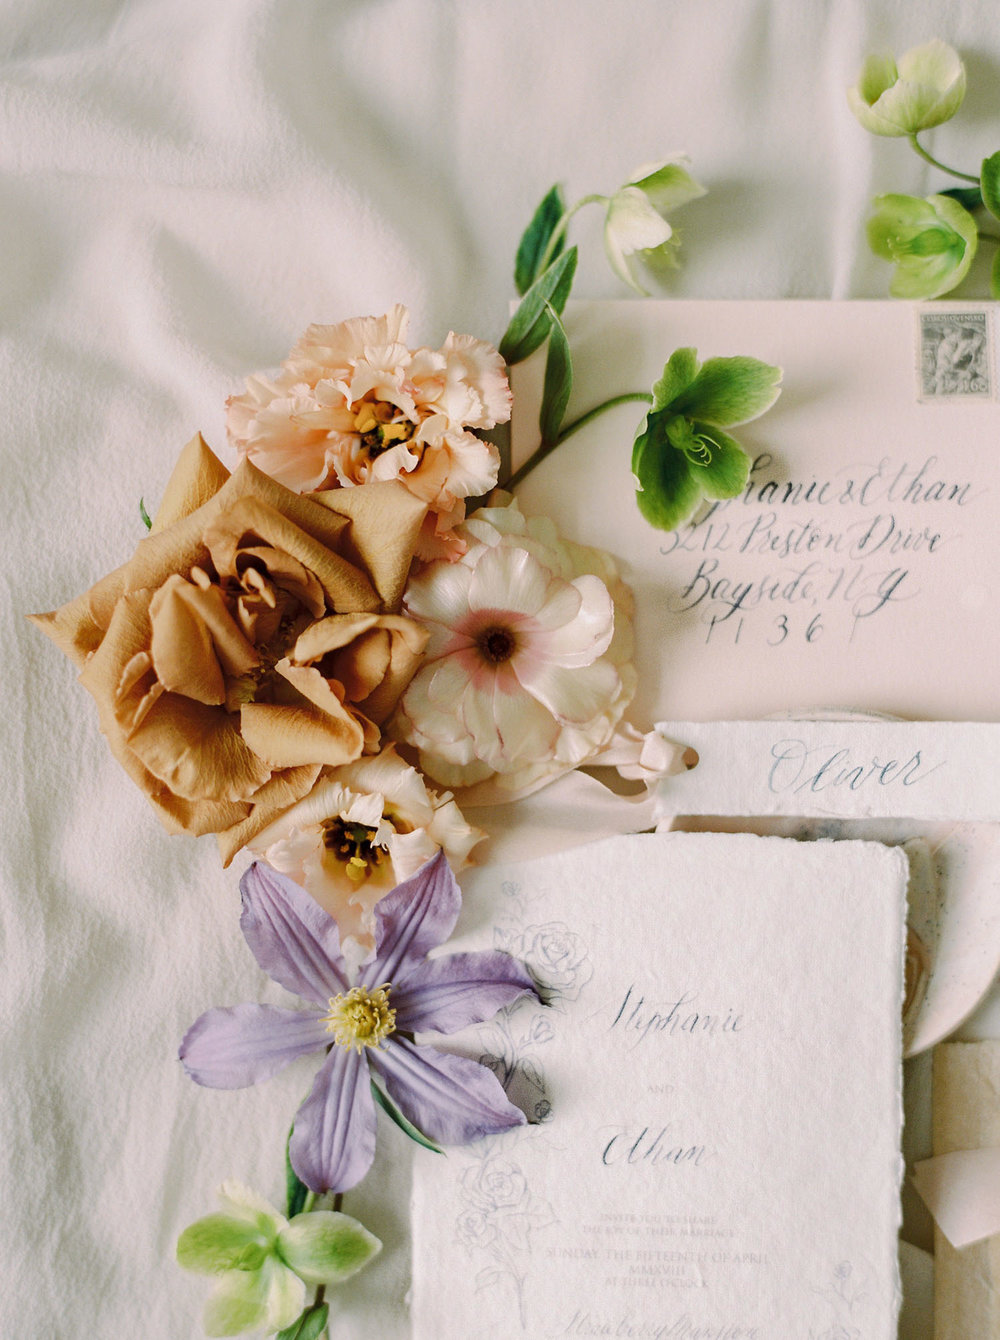 Debbie Wong Design calligrapher wedding invitation 3.jpg